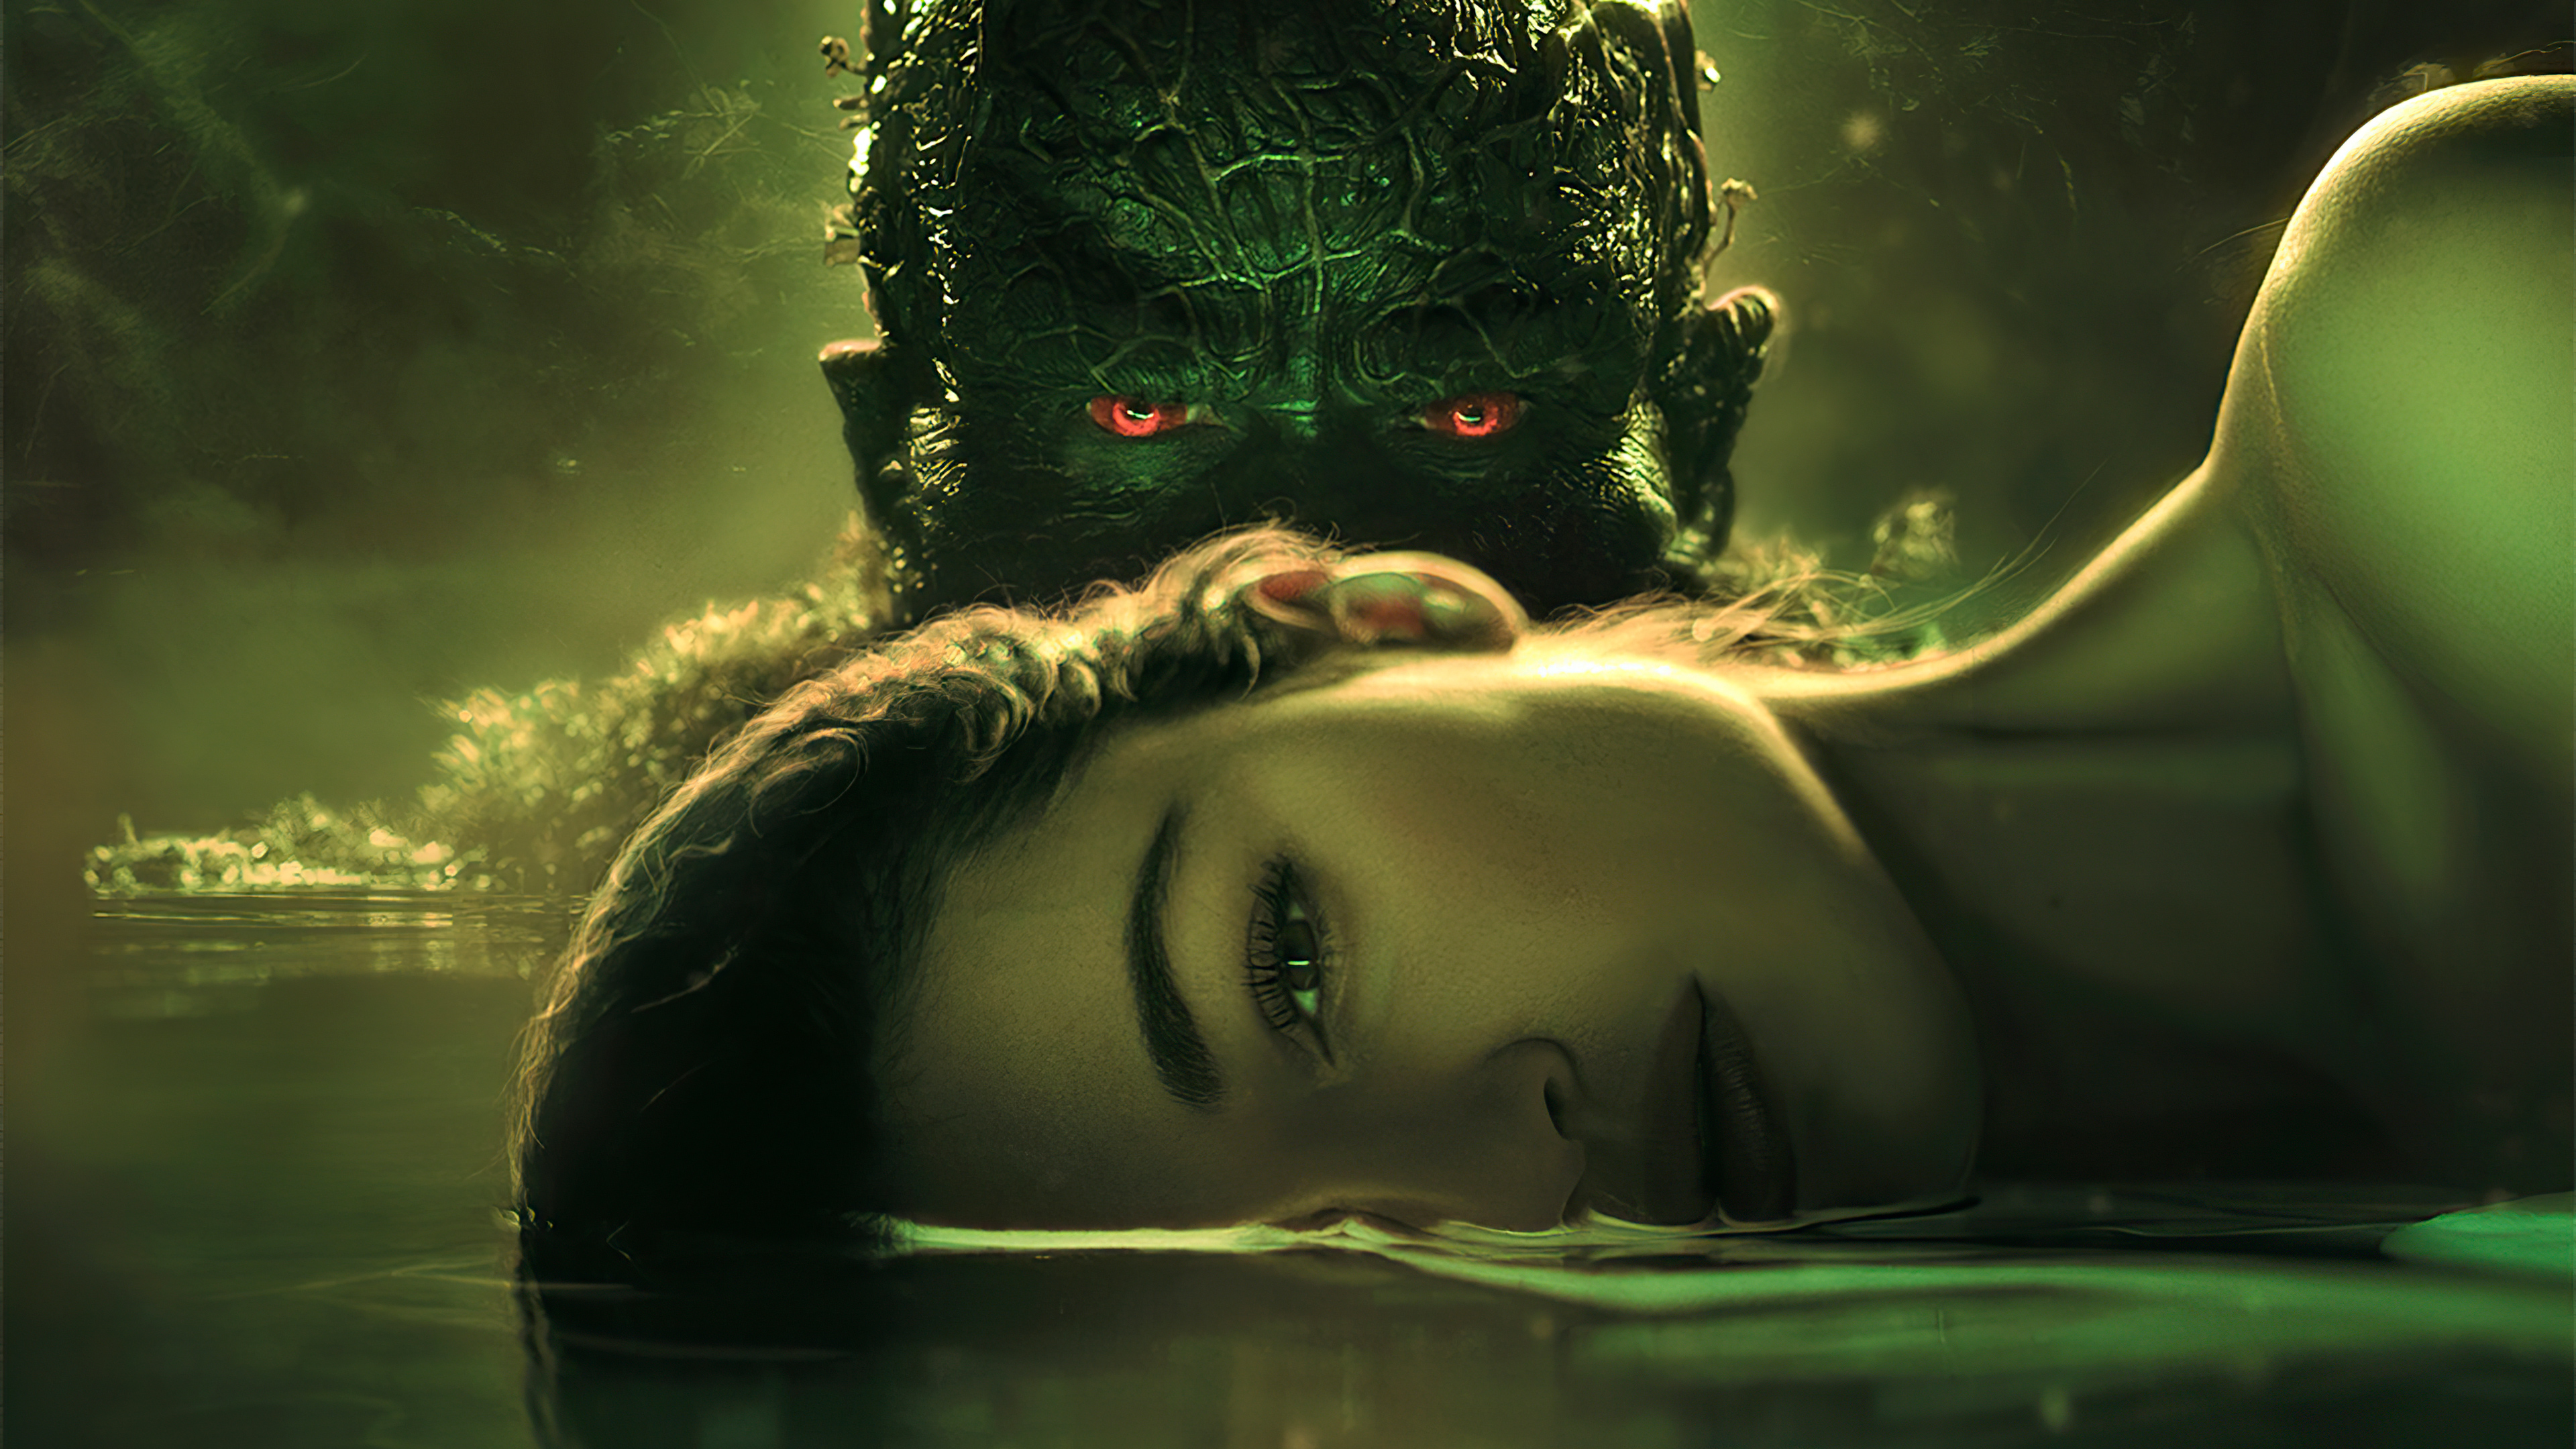 Swamp Thing Season 2 Hd Tv Shows 4k Wallpapers Images Backgrounds Photos And Pictures